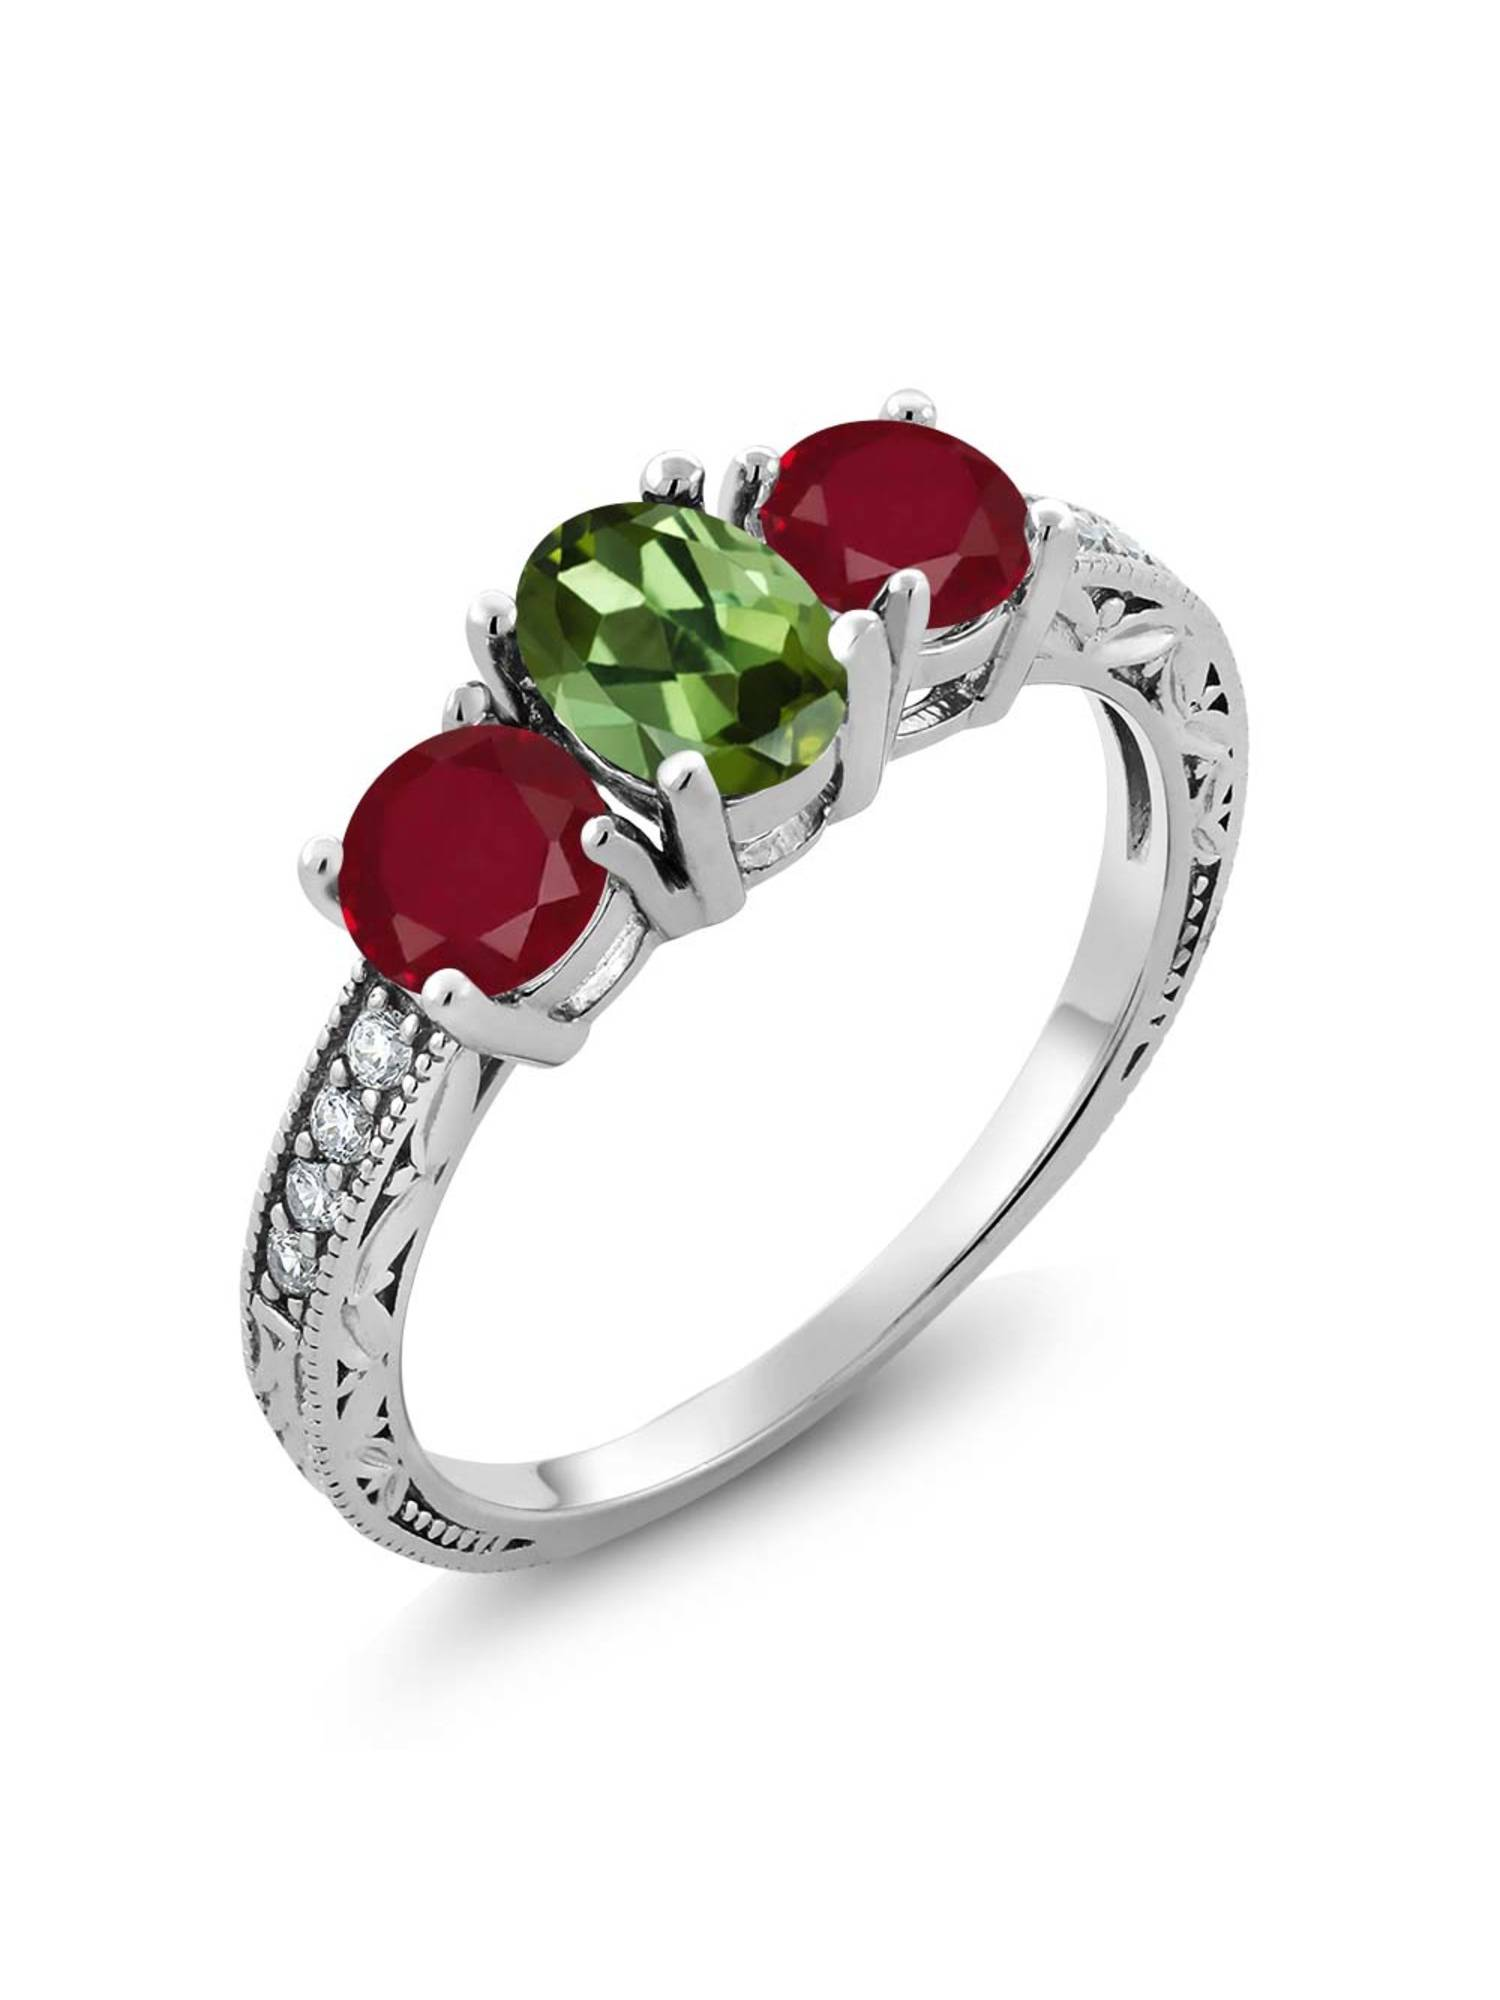 Gem Stone King 1.92 Ct Oval Green Tourmaline Red Ruby 925 Sterling Silver Ring by